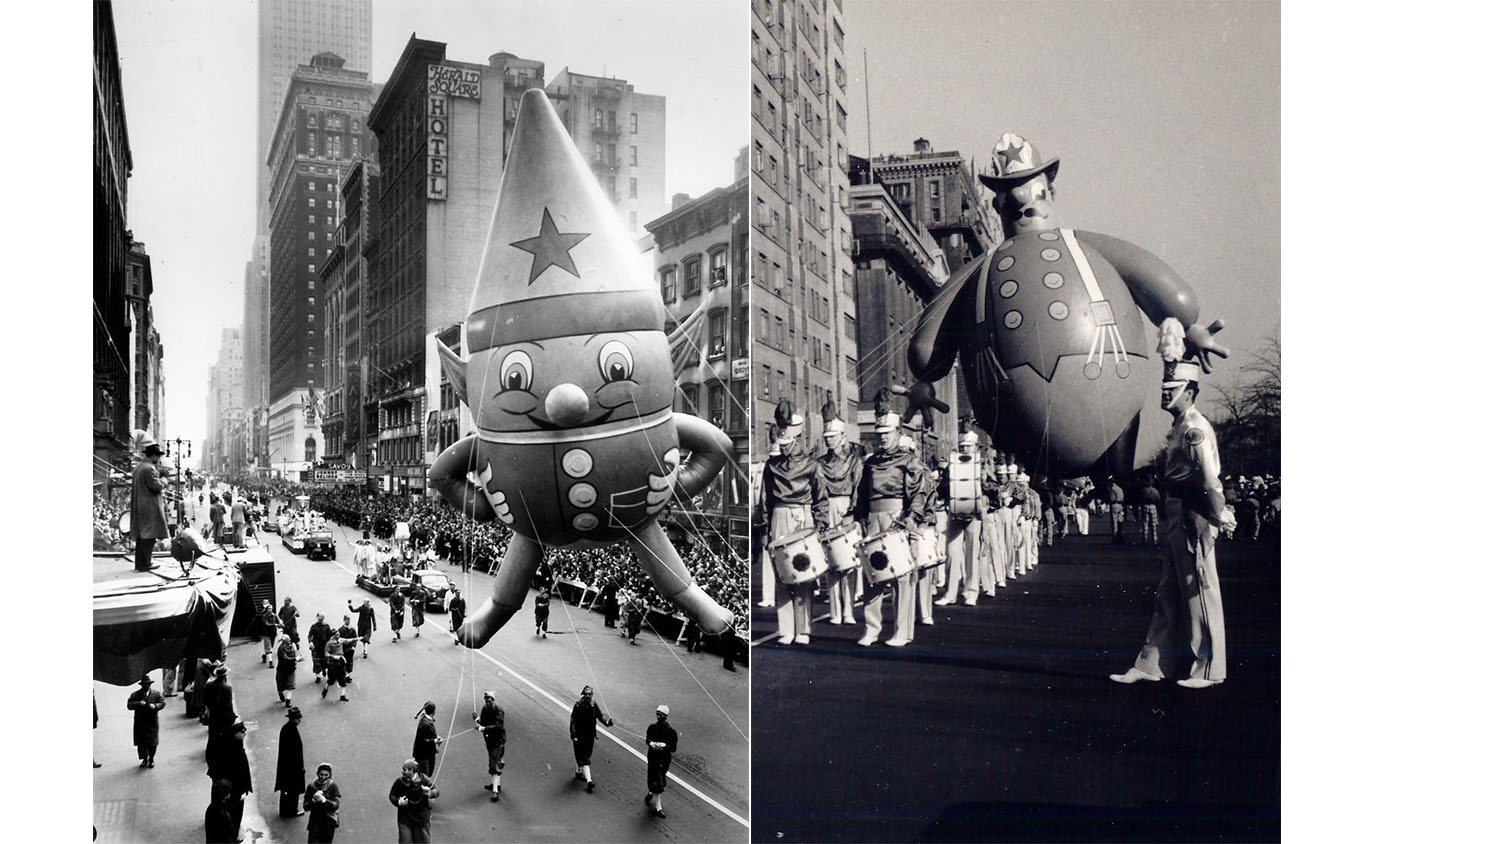 Left: Macy's Elf balloon; 1947 Right: Harold the Fireman, 1948